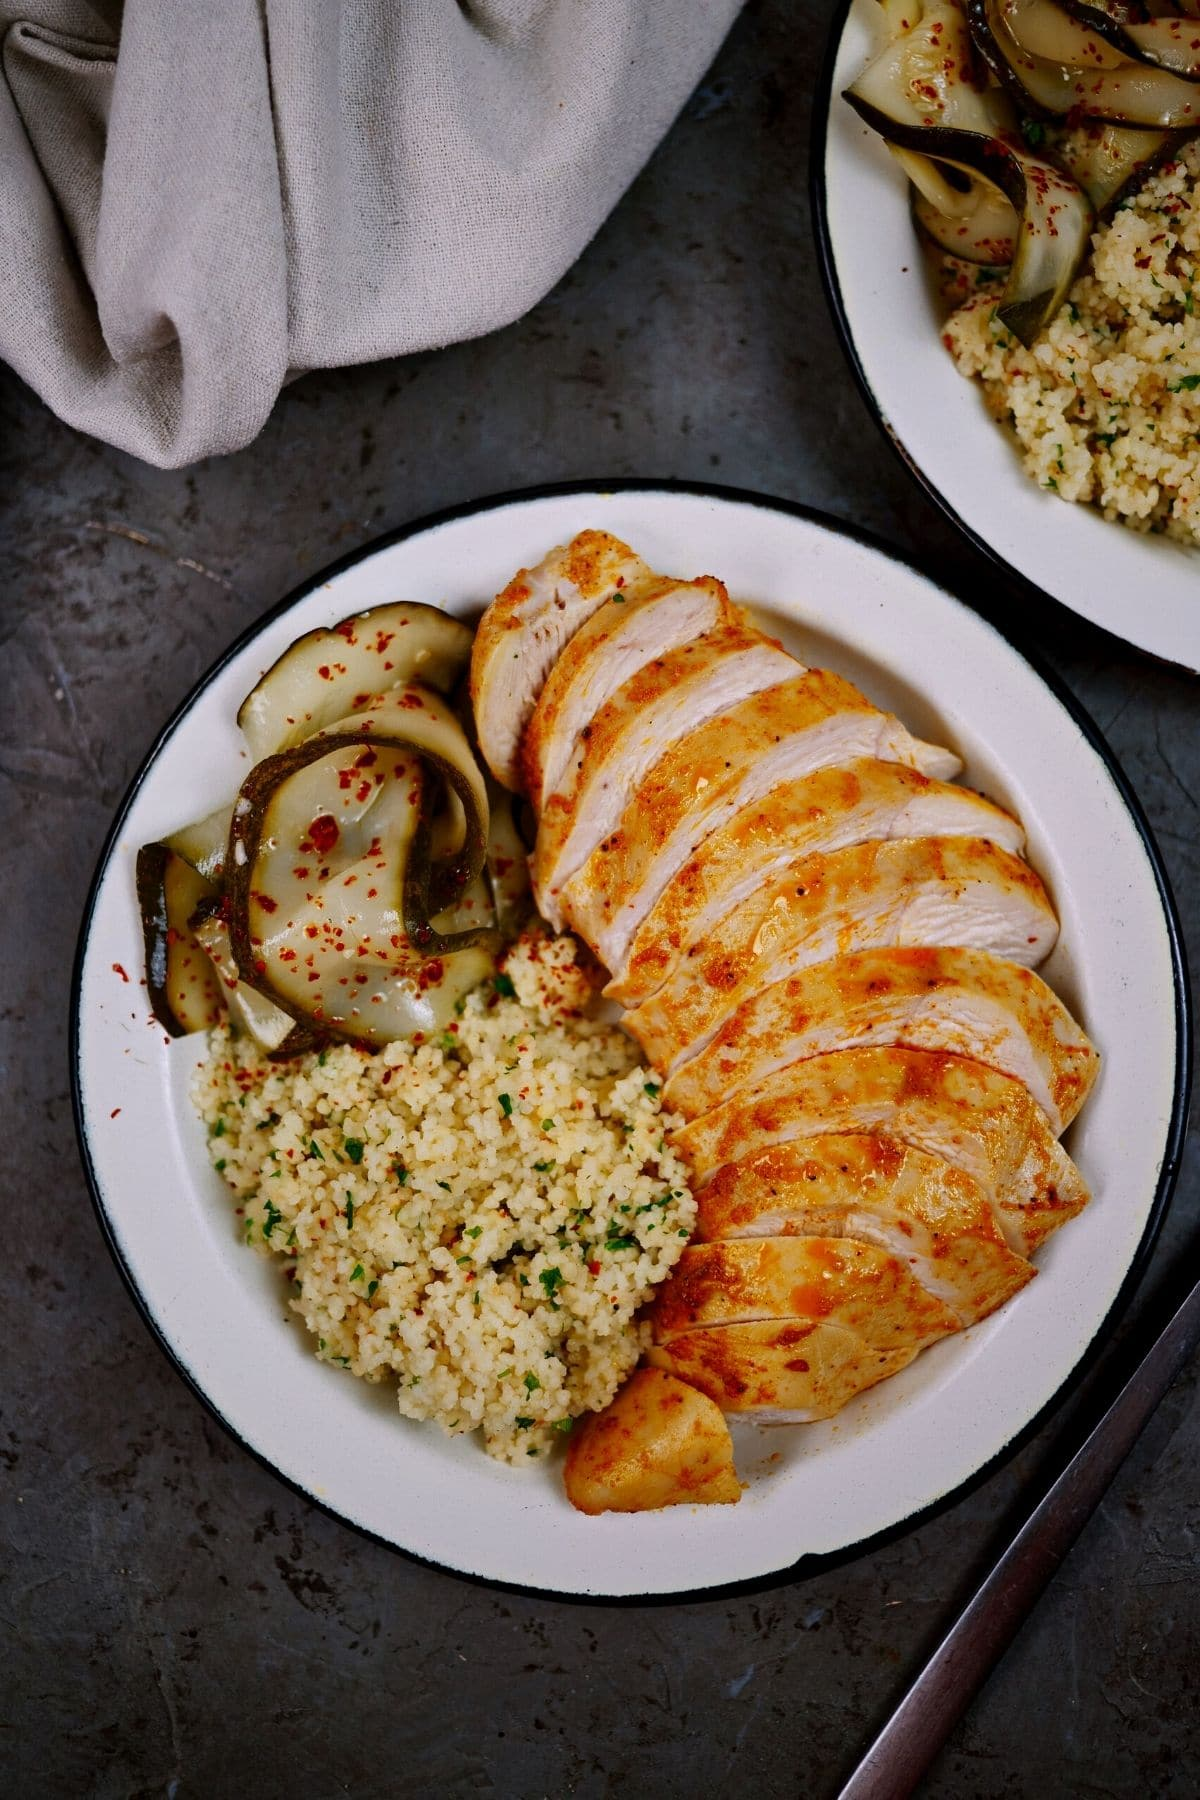 Pickles rice and chicken on white plate sitting on gray table